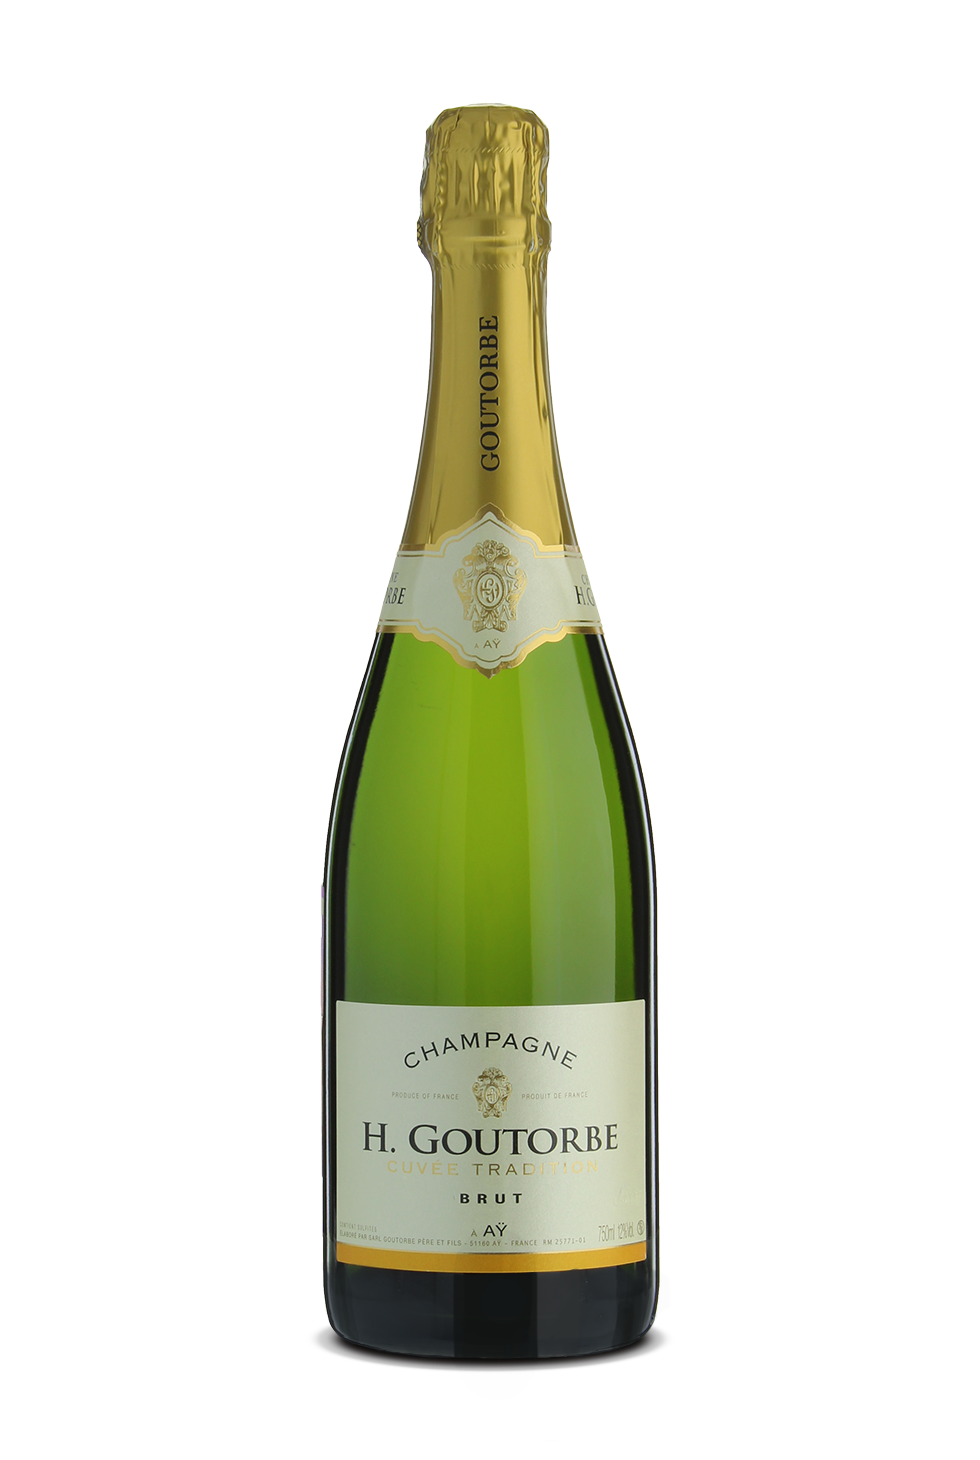 H. Goutorbe Cuvée Tradition Brut Champagne AOC